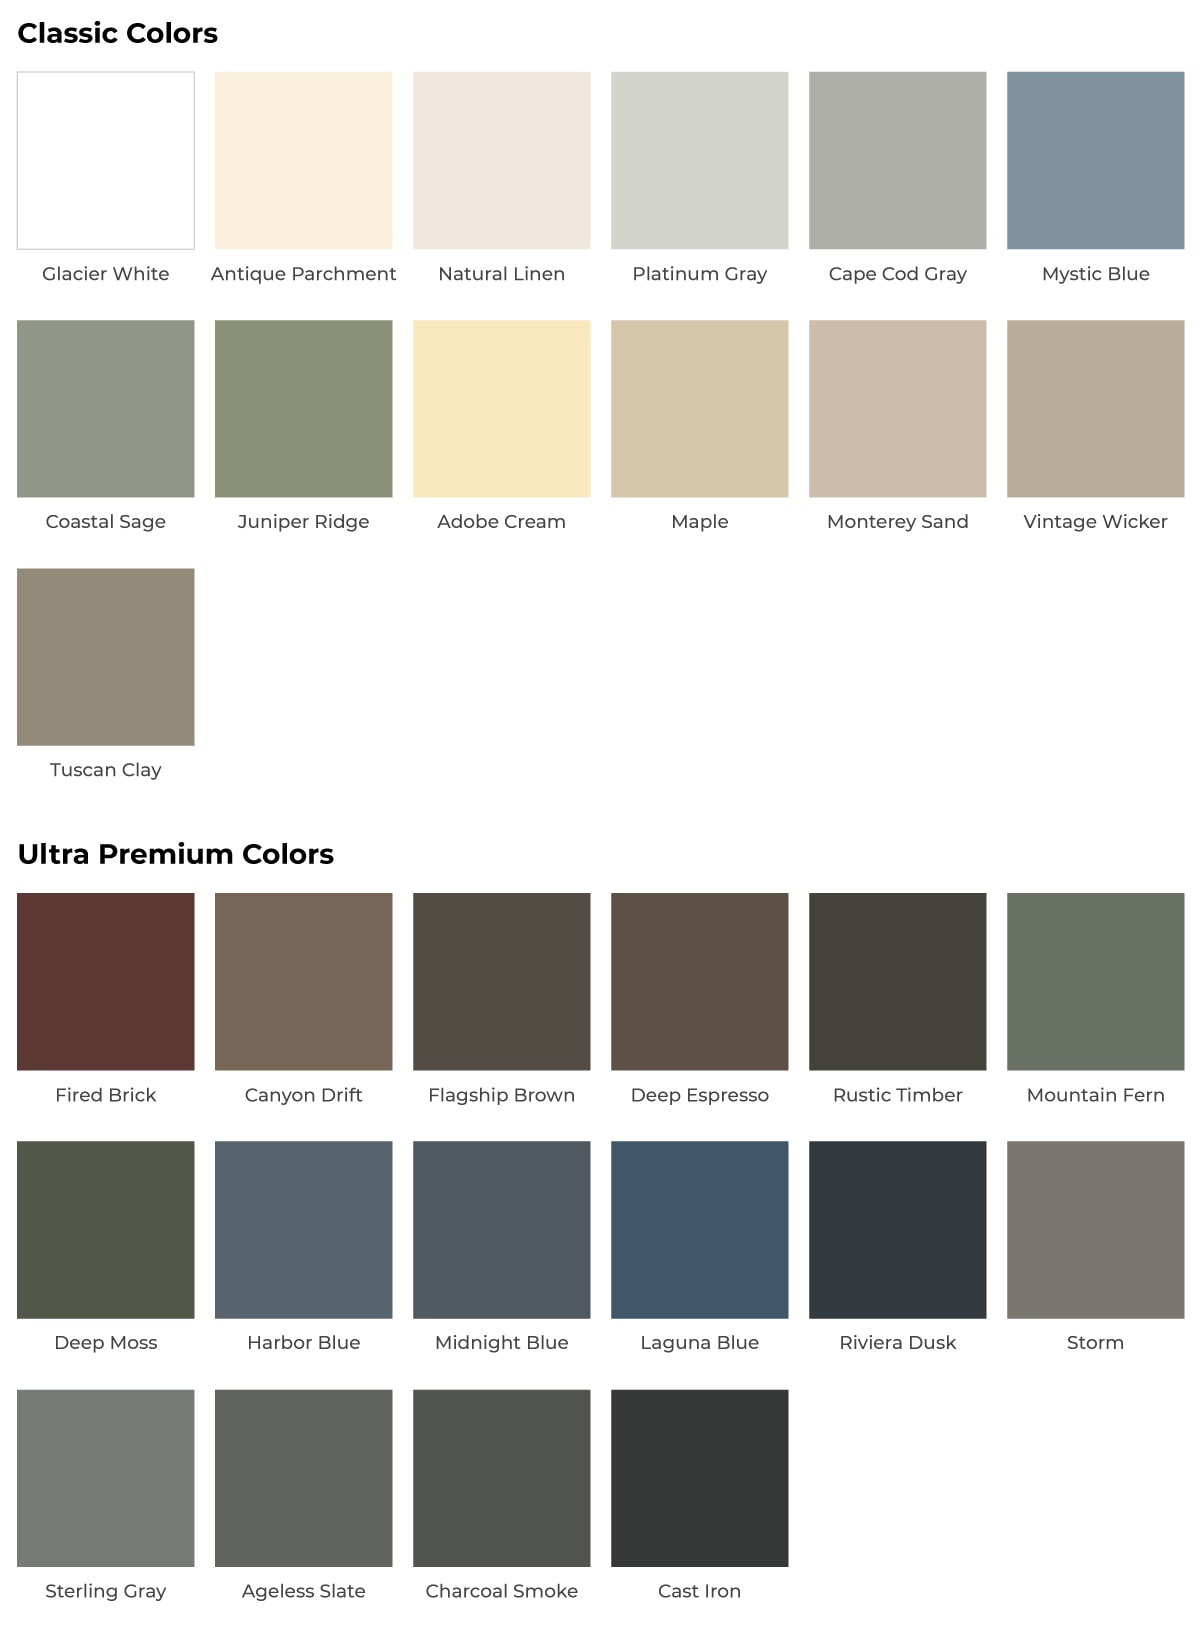 Landmark Roofing color options